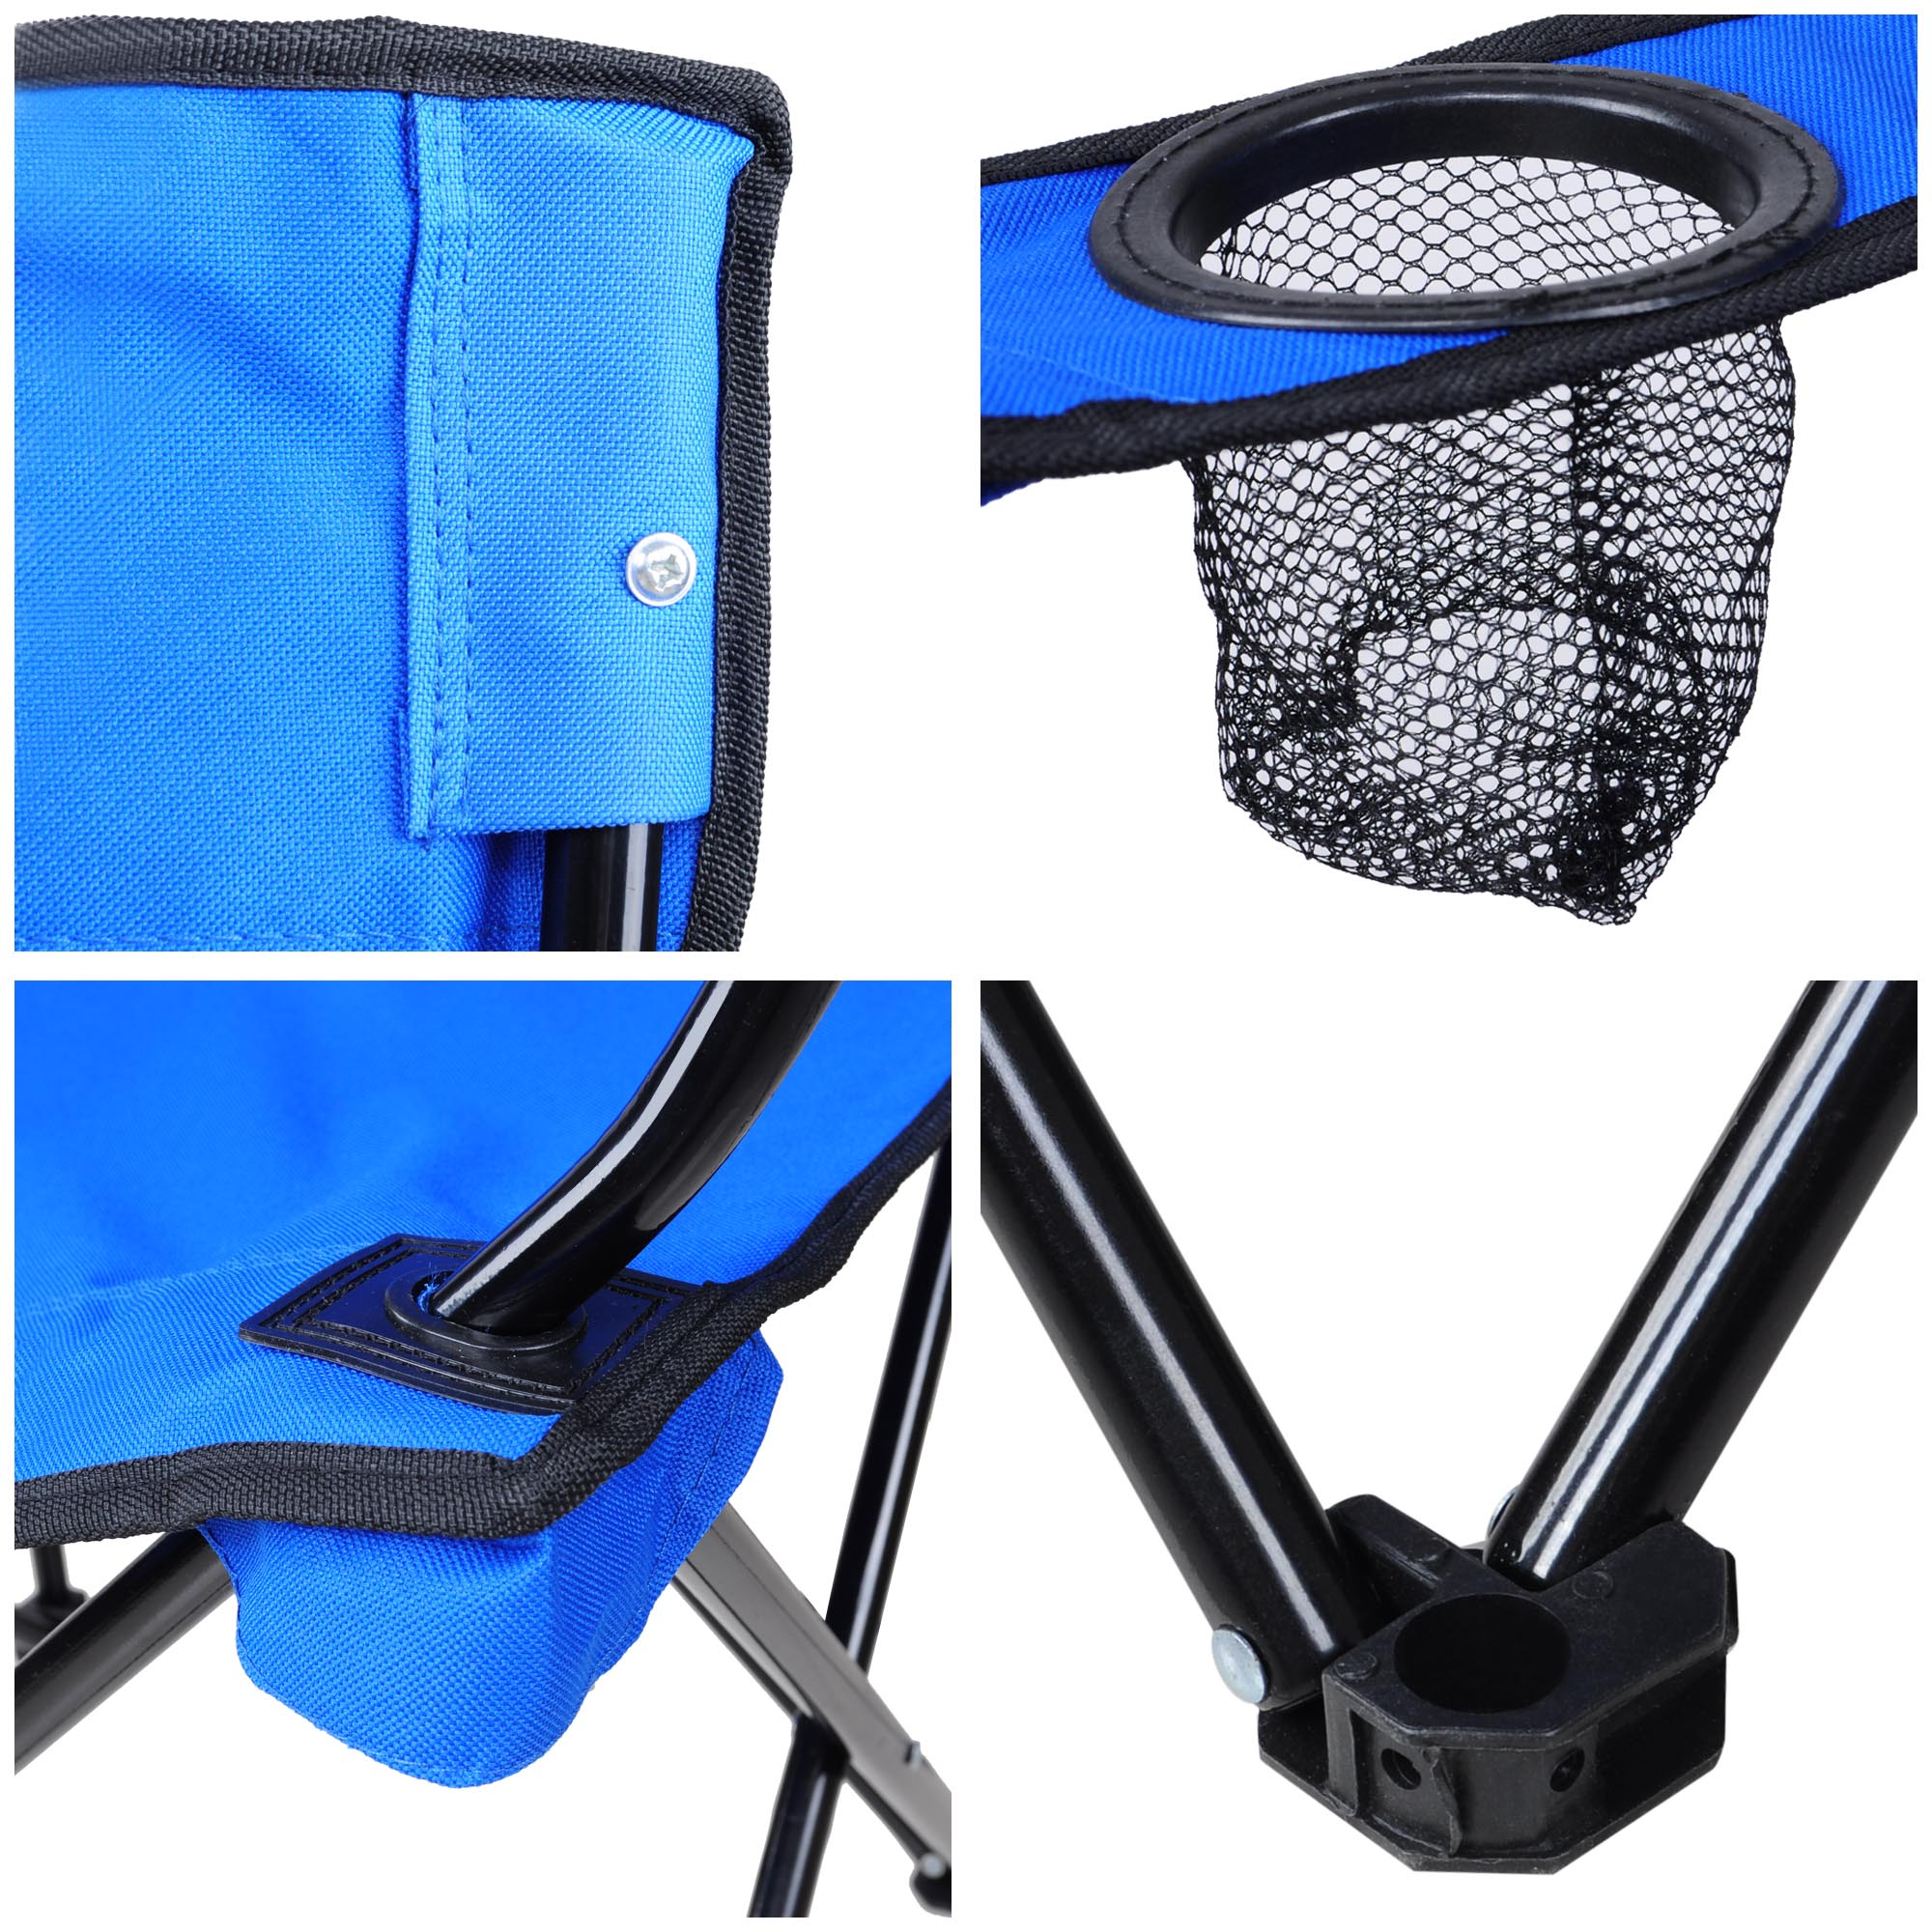 fishing chair tent urban outfitters portable folding for hunting blind hiking